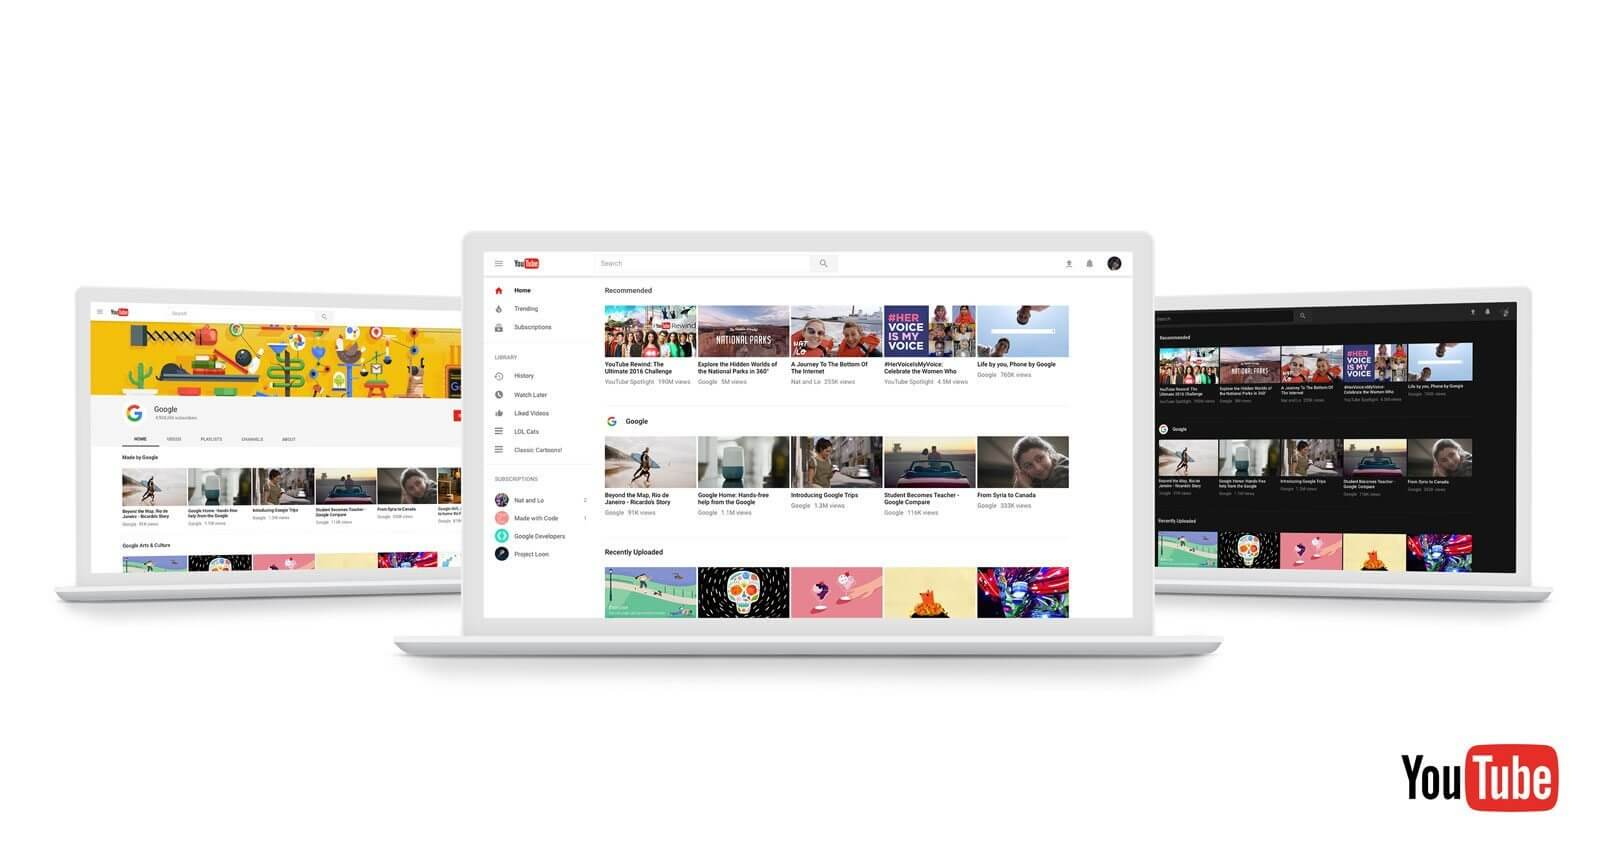 YouTube anuncia modo escuro e redesign do site